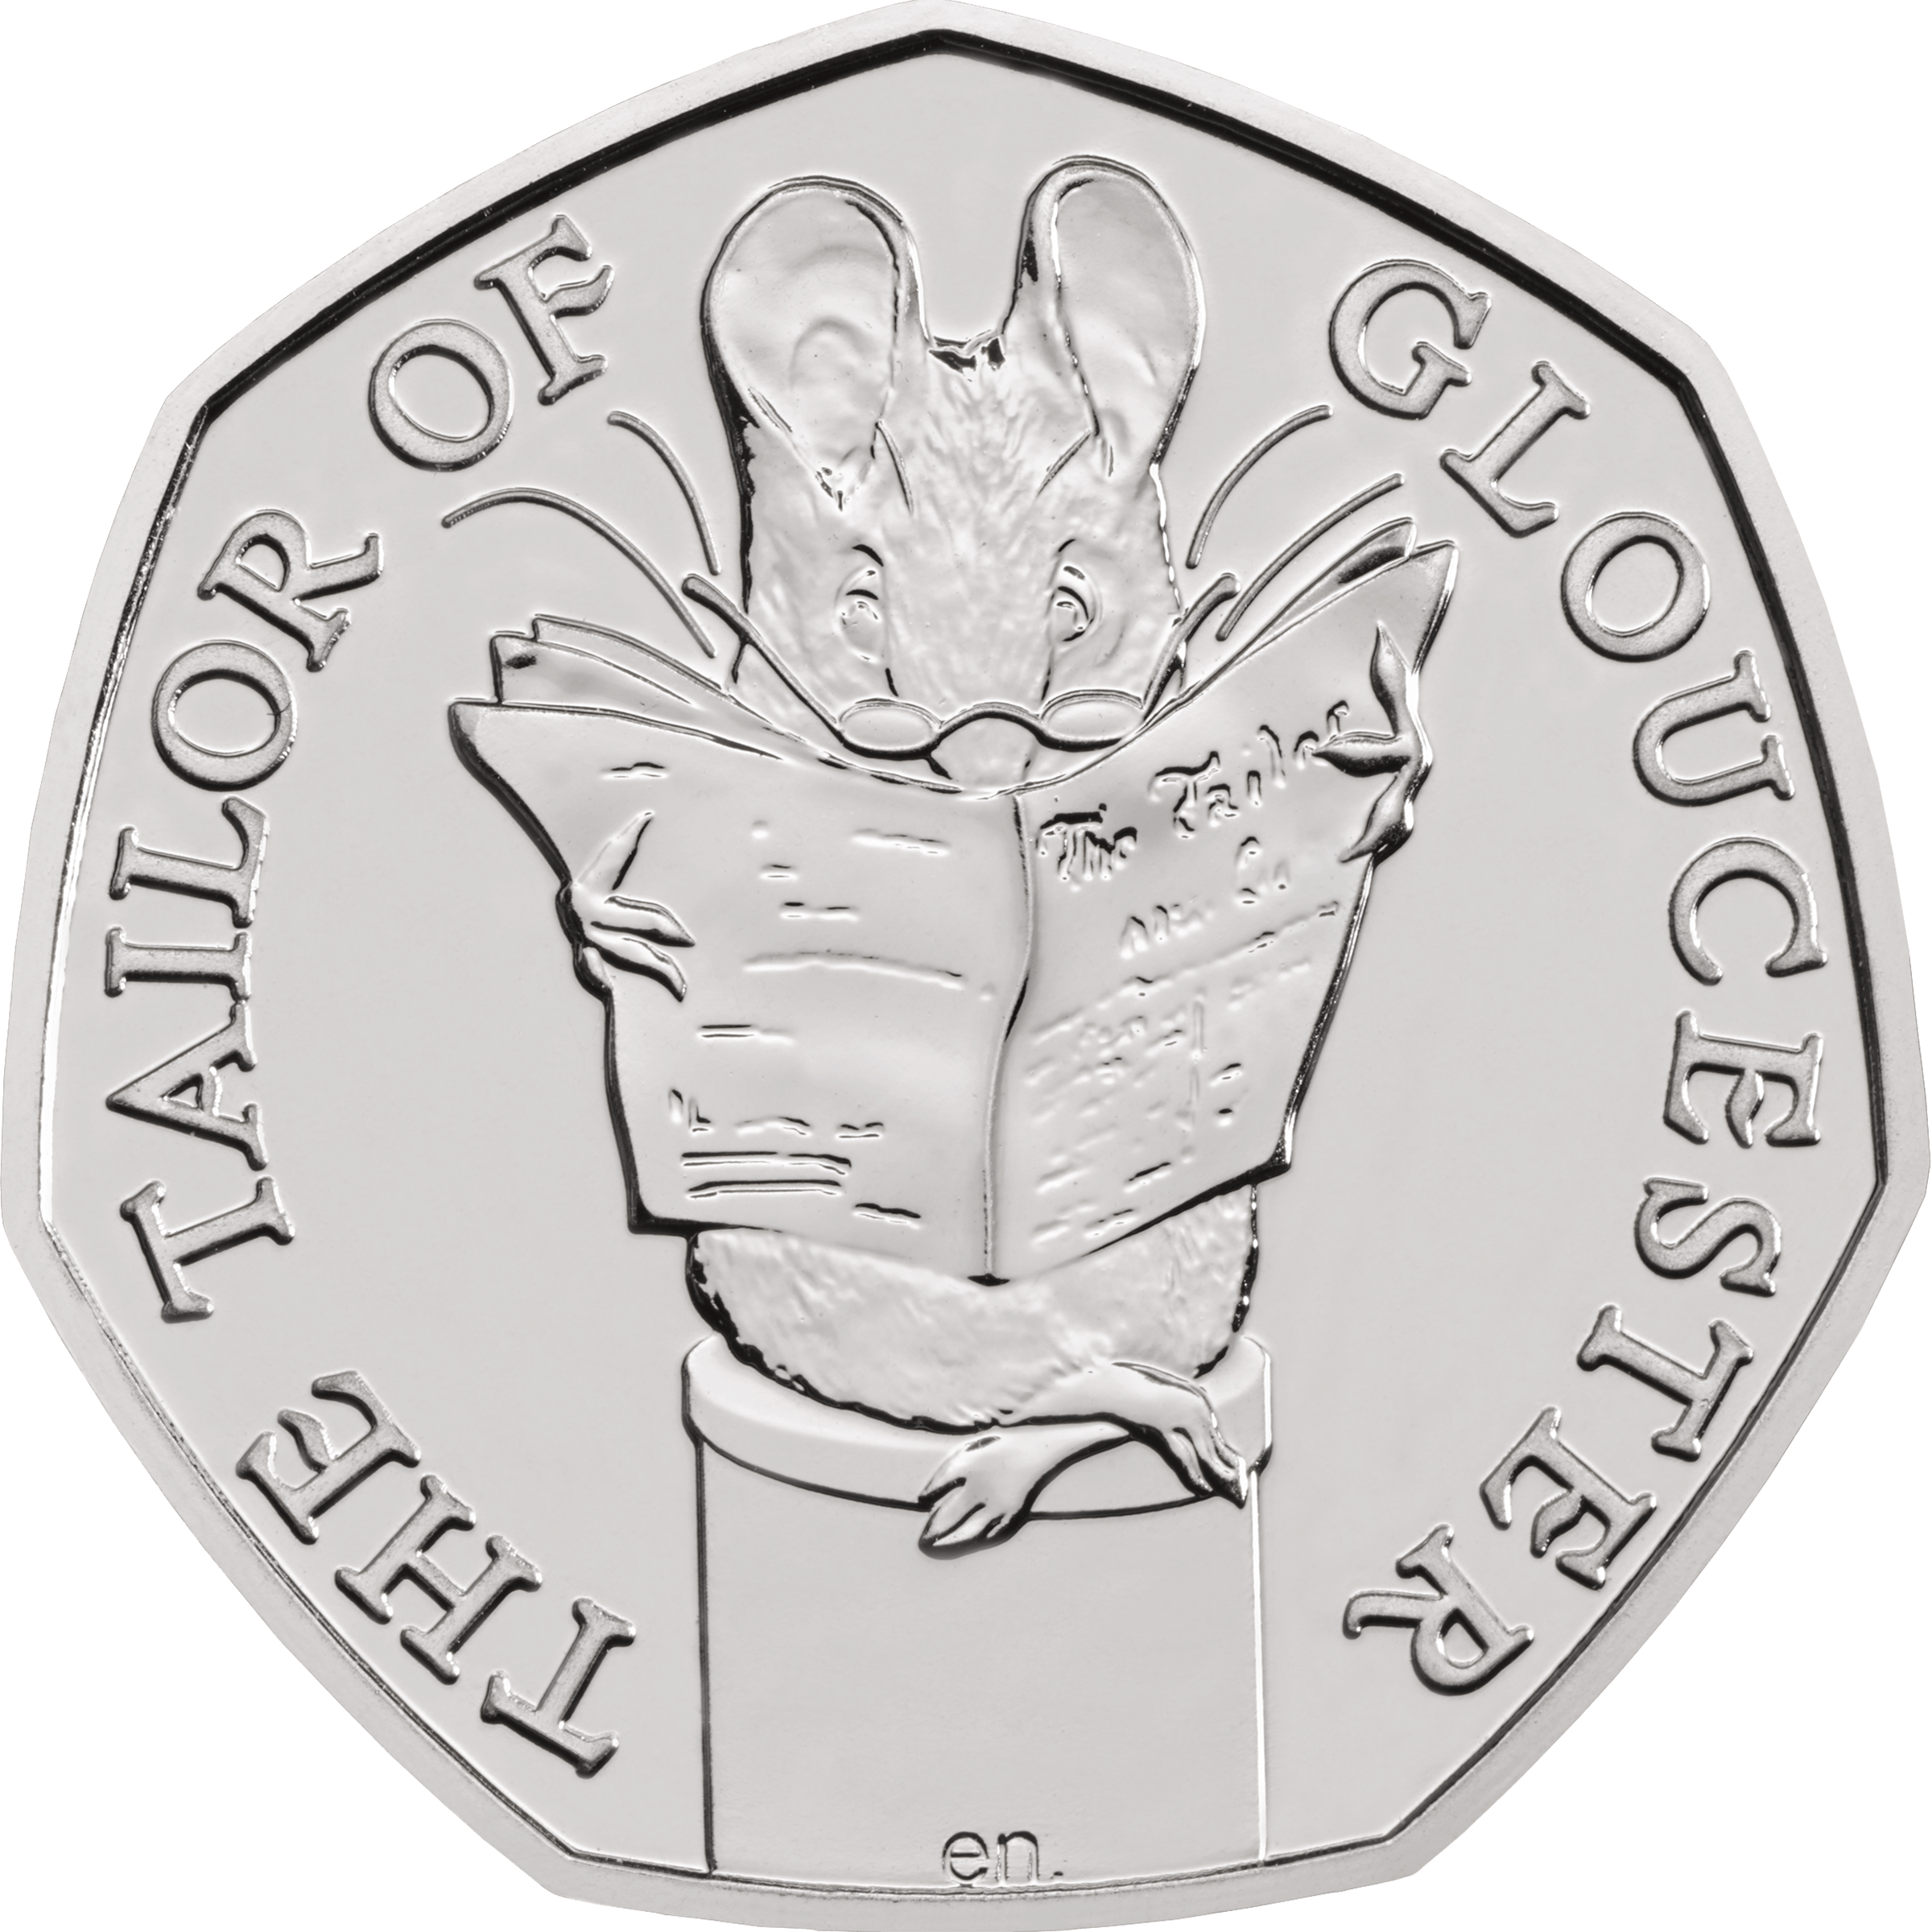 2018 Tailor Of Gloucester 50p Fifty Pence Coin In Gift